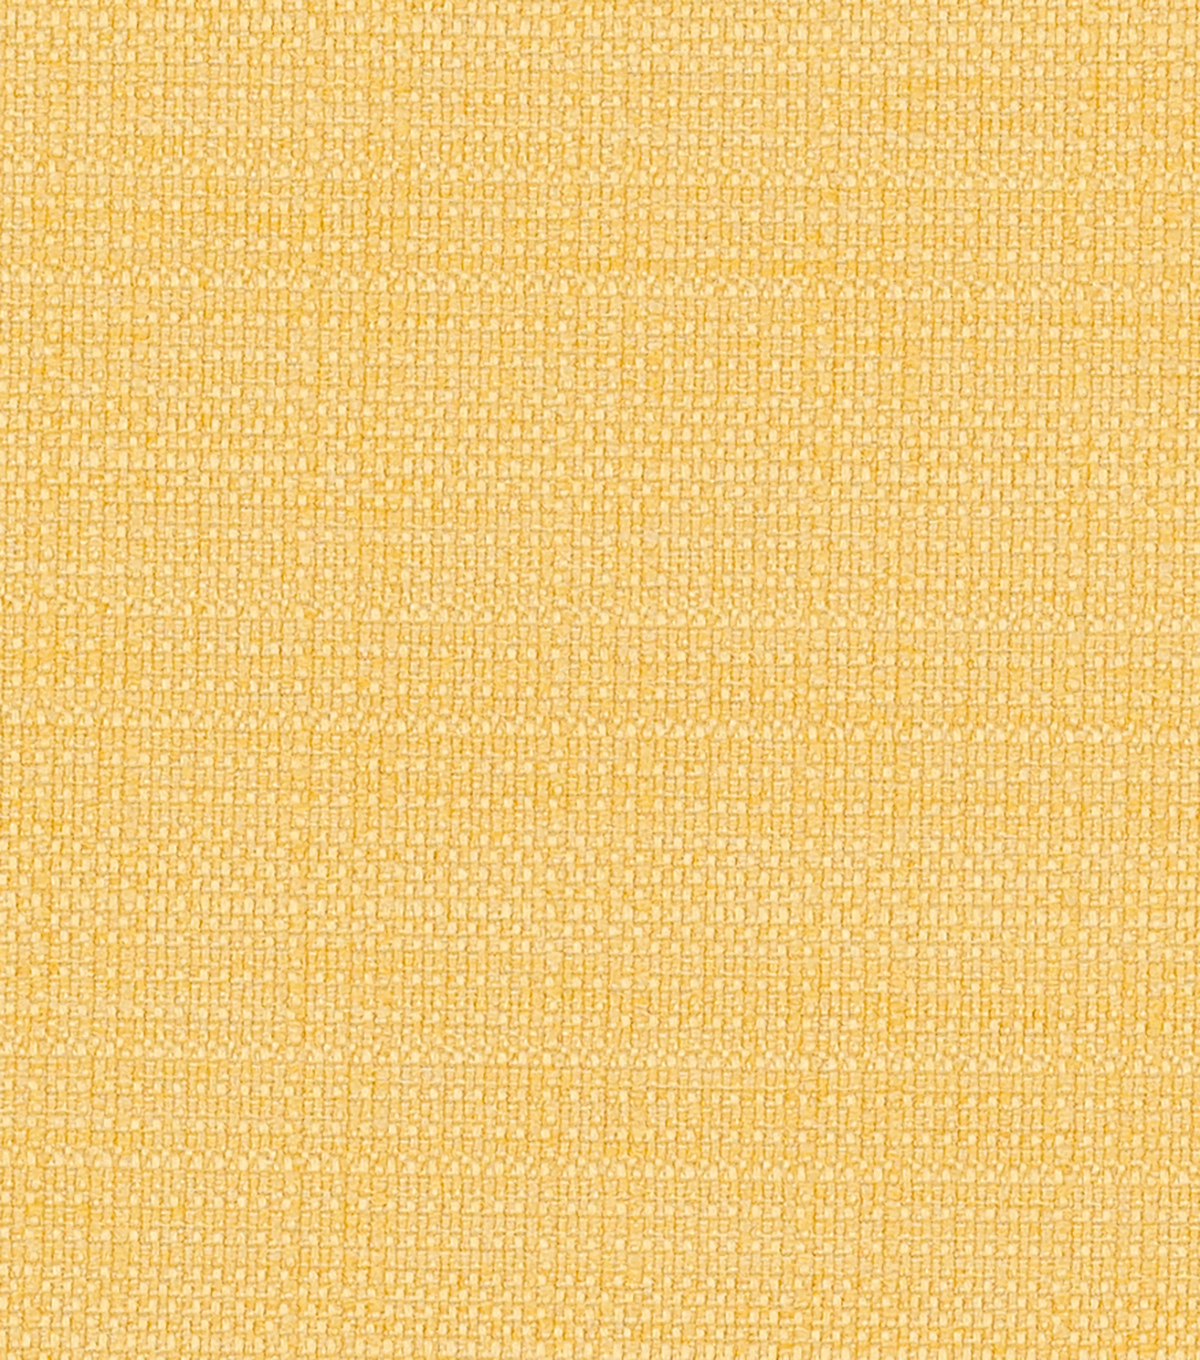 Savanna Lemon Swatch